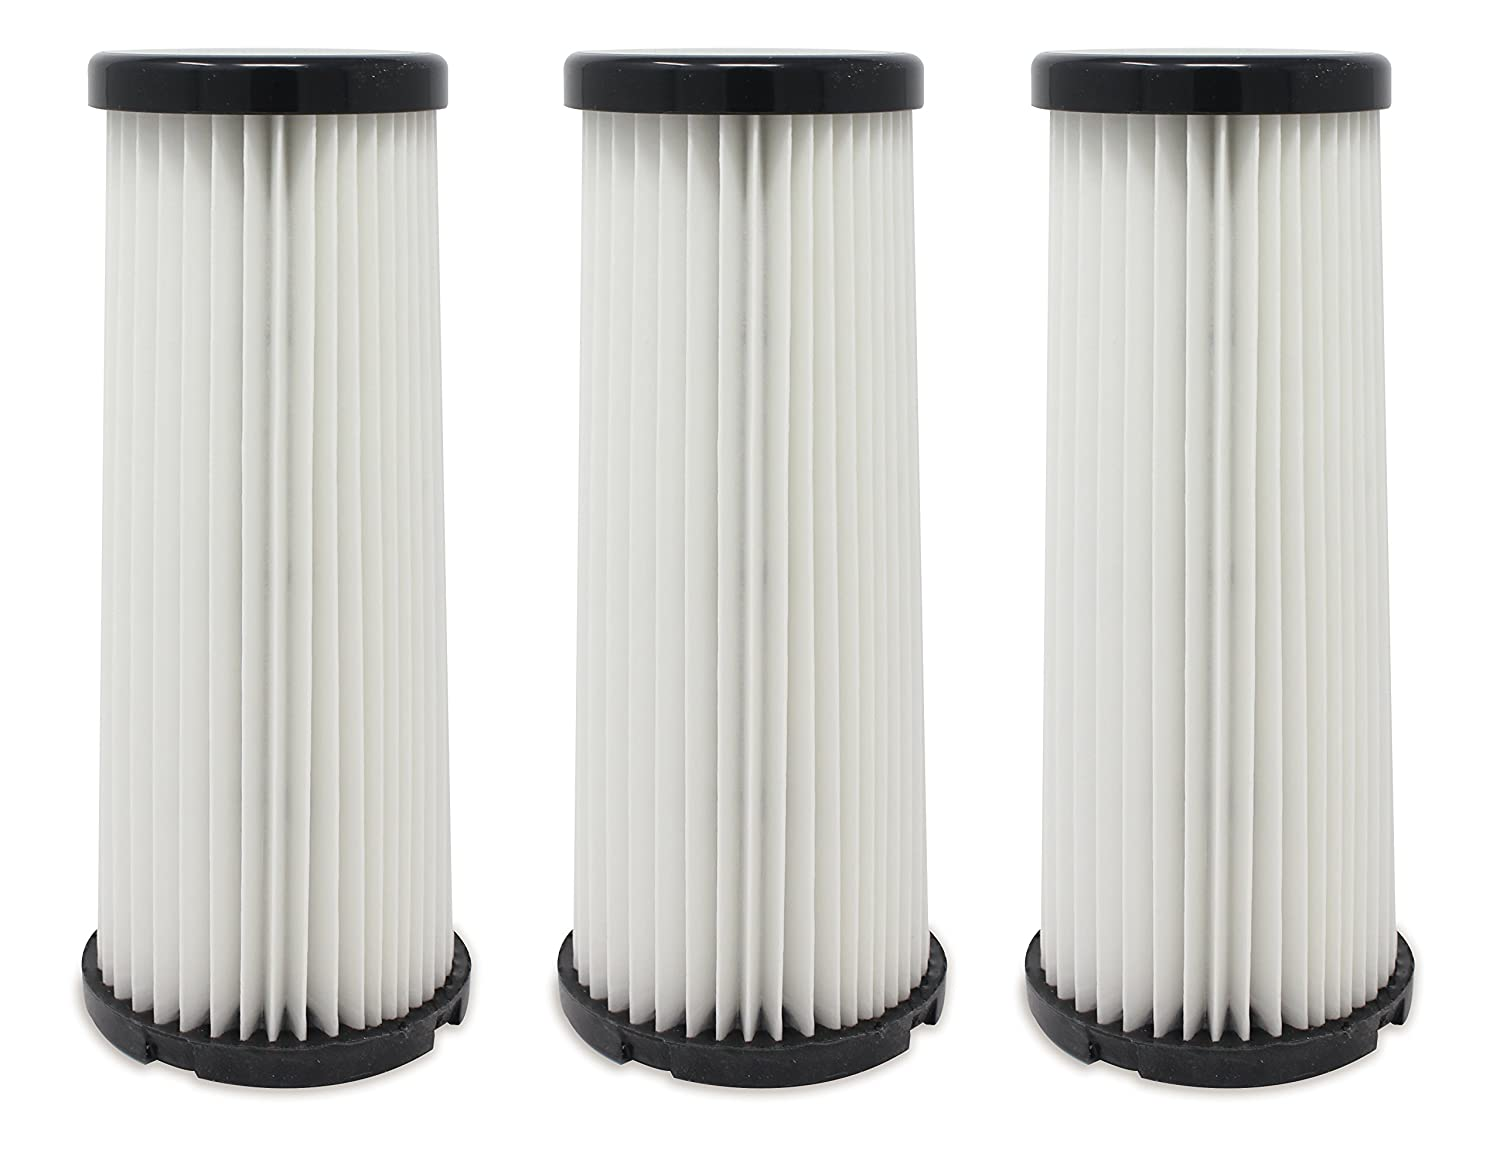 2-JC0280-000 Pack of 3 F-1 Fette Filter Compare to Part # 3JC0280000 3-JC0280-000 /& 2JC0280000 Vacuum HEPA Filter Compatible with Dirt Devil F1